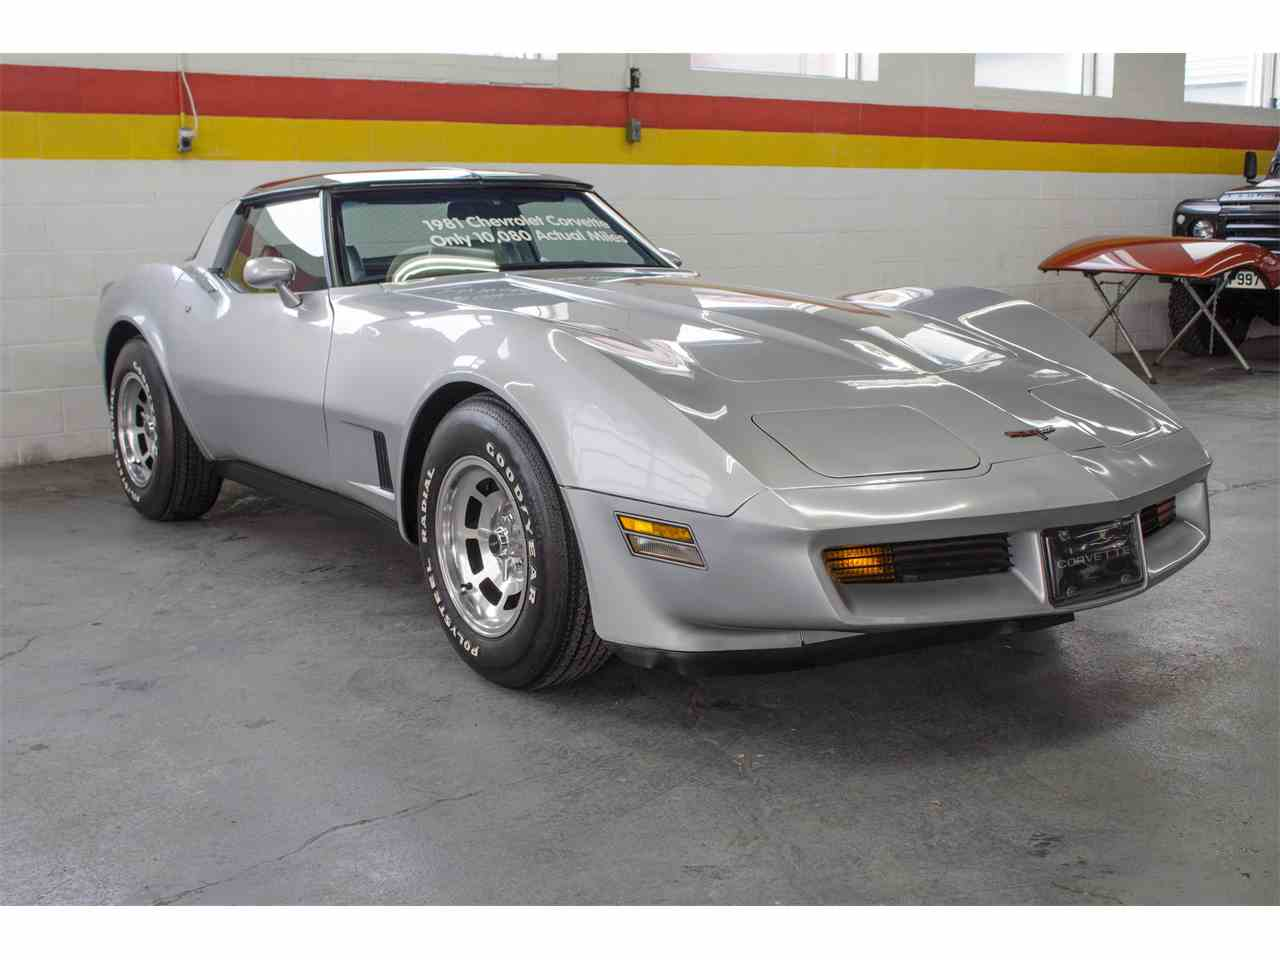 Large Picture of 1981 Chevrolet Corvette located in Montreal Quebec - $26,900.00 Offered by John Scotti Classic Cars - KKXV